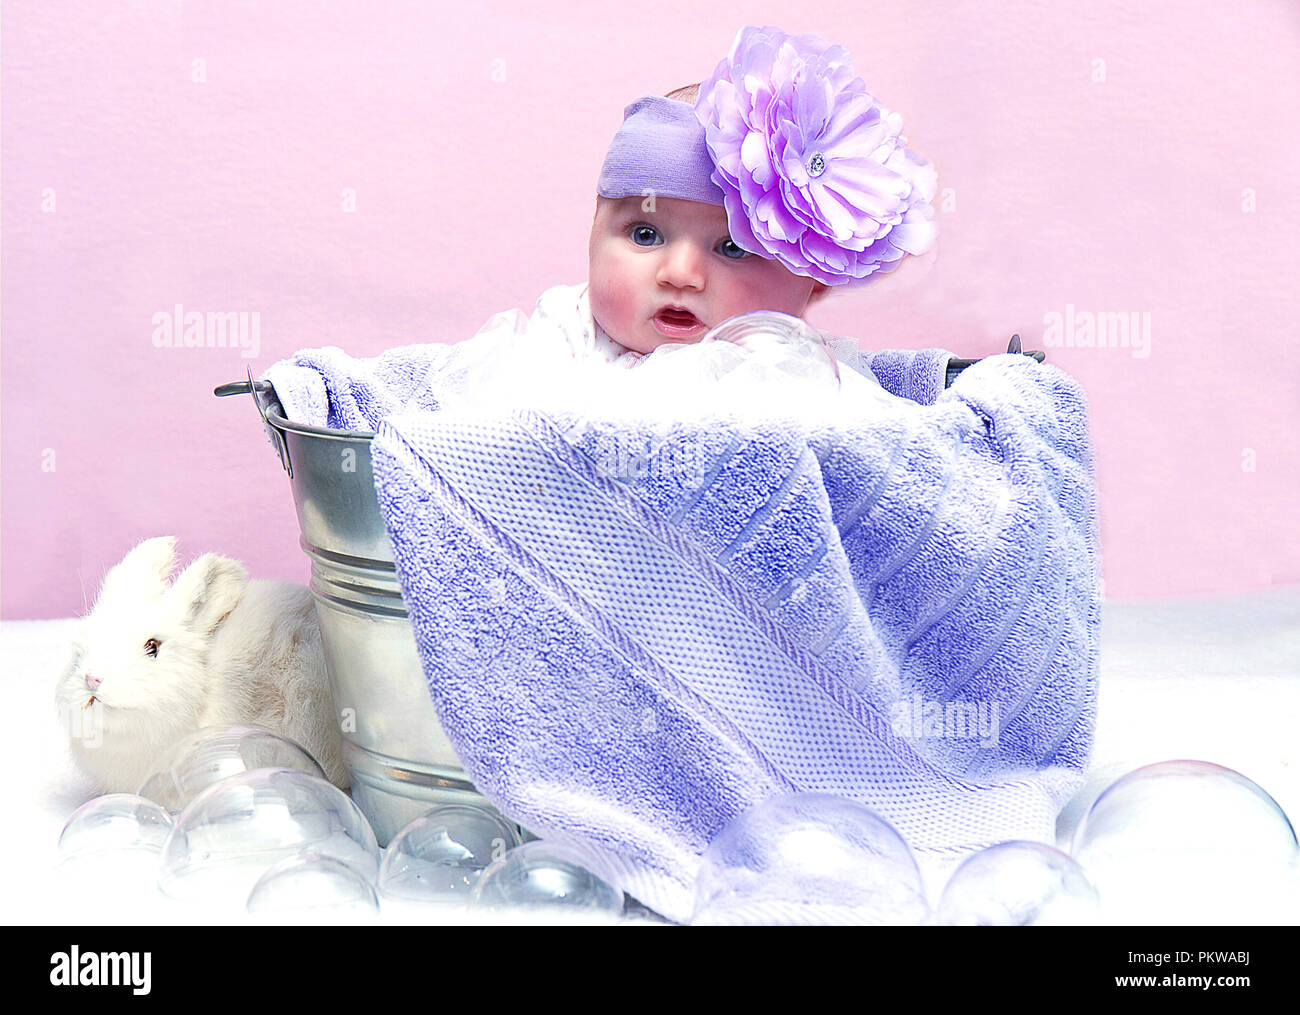 Baby girl assortment of images including wearing santa hat, sleeping, wash tub, crying, head flower band  and angelic wings. - Stock Image